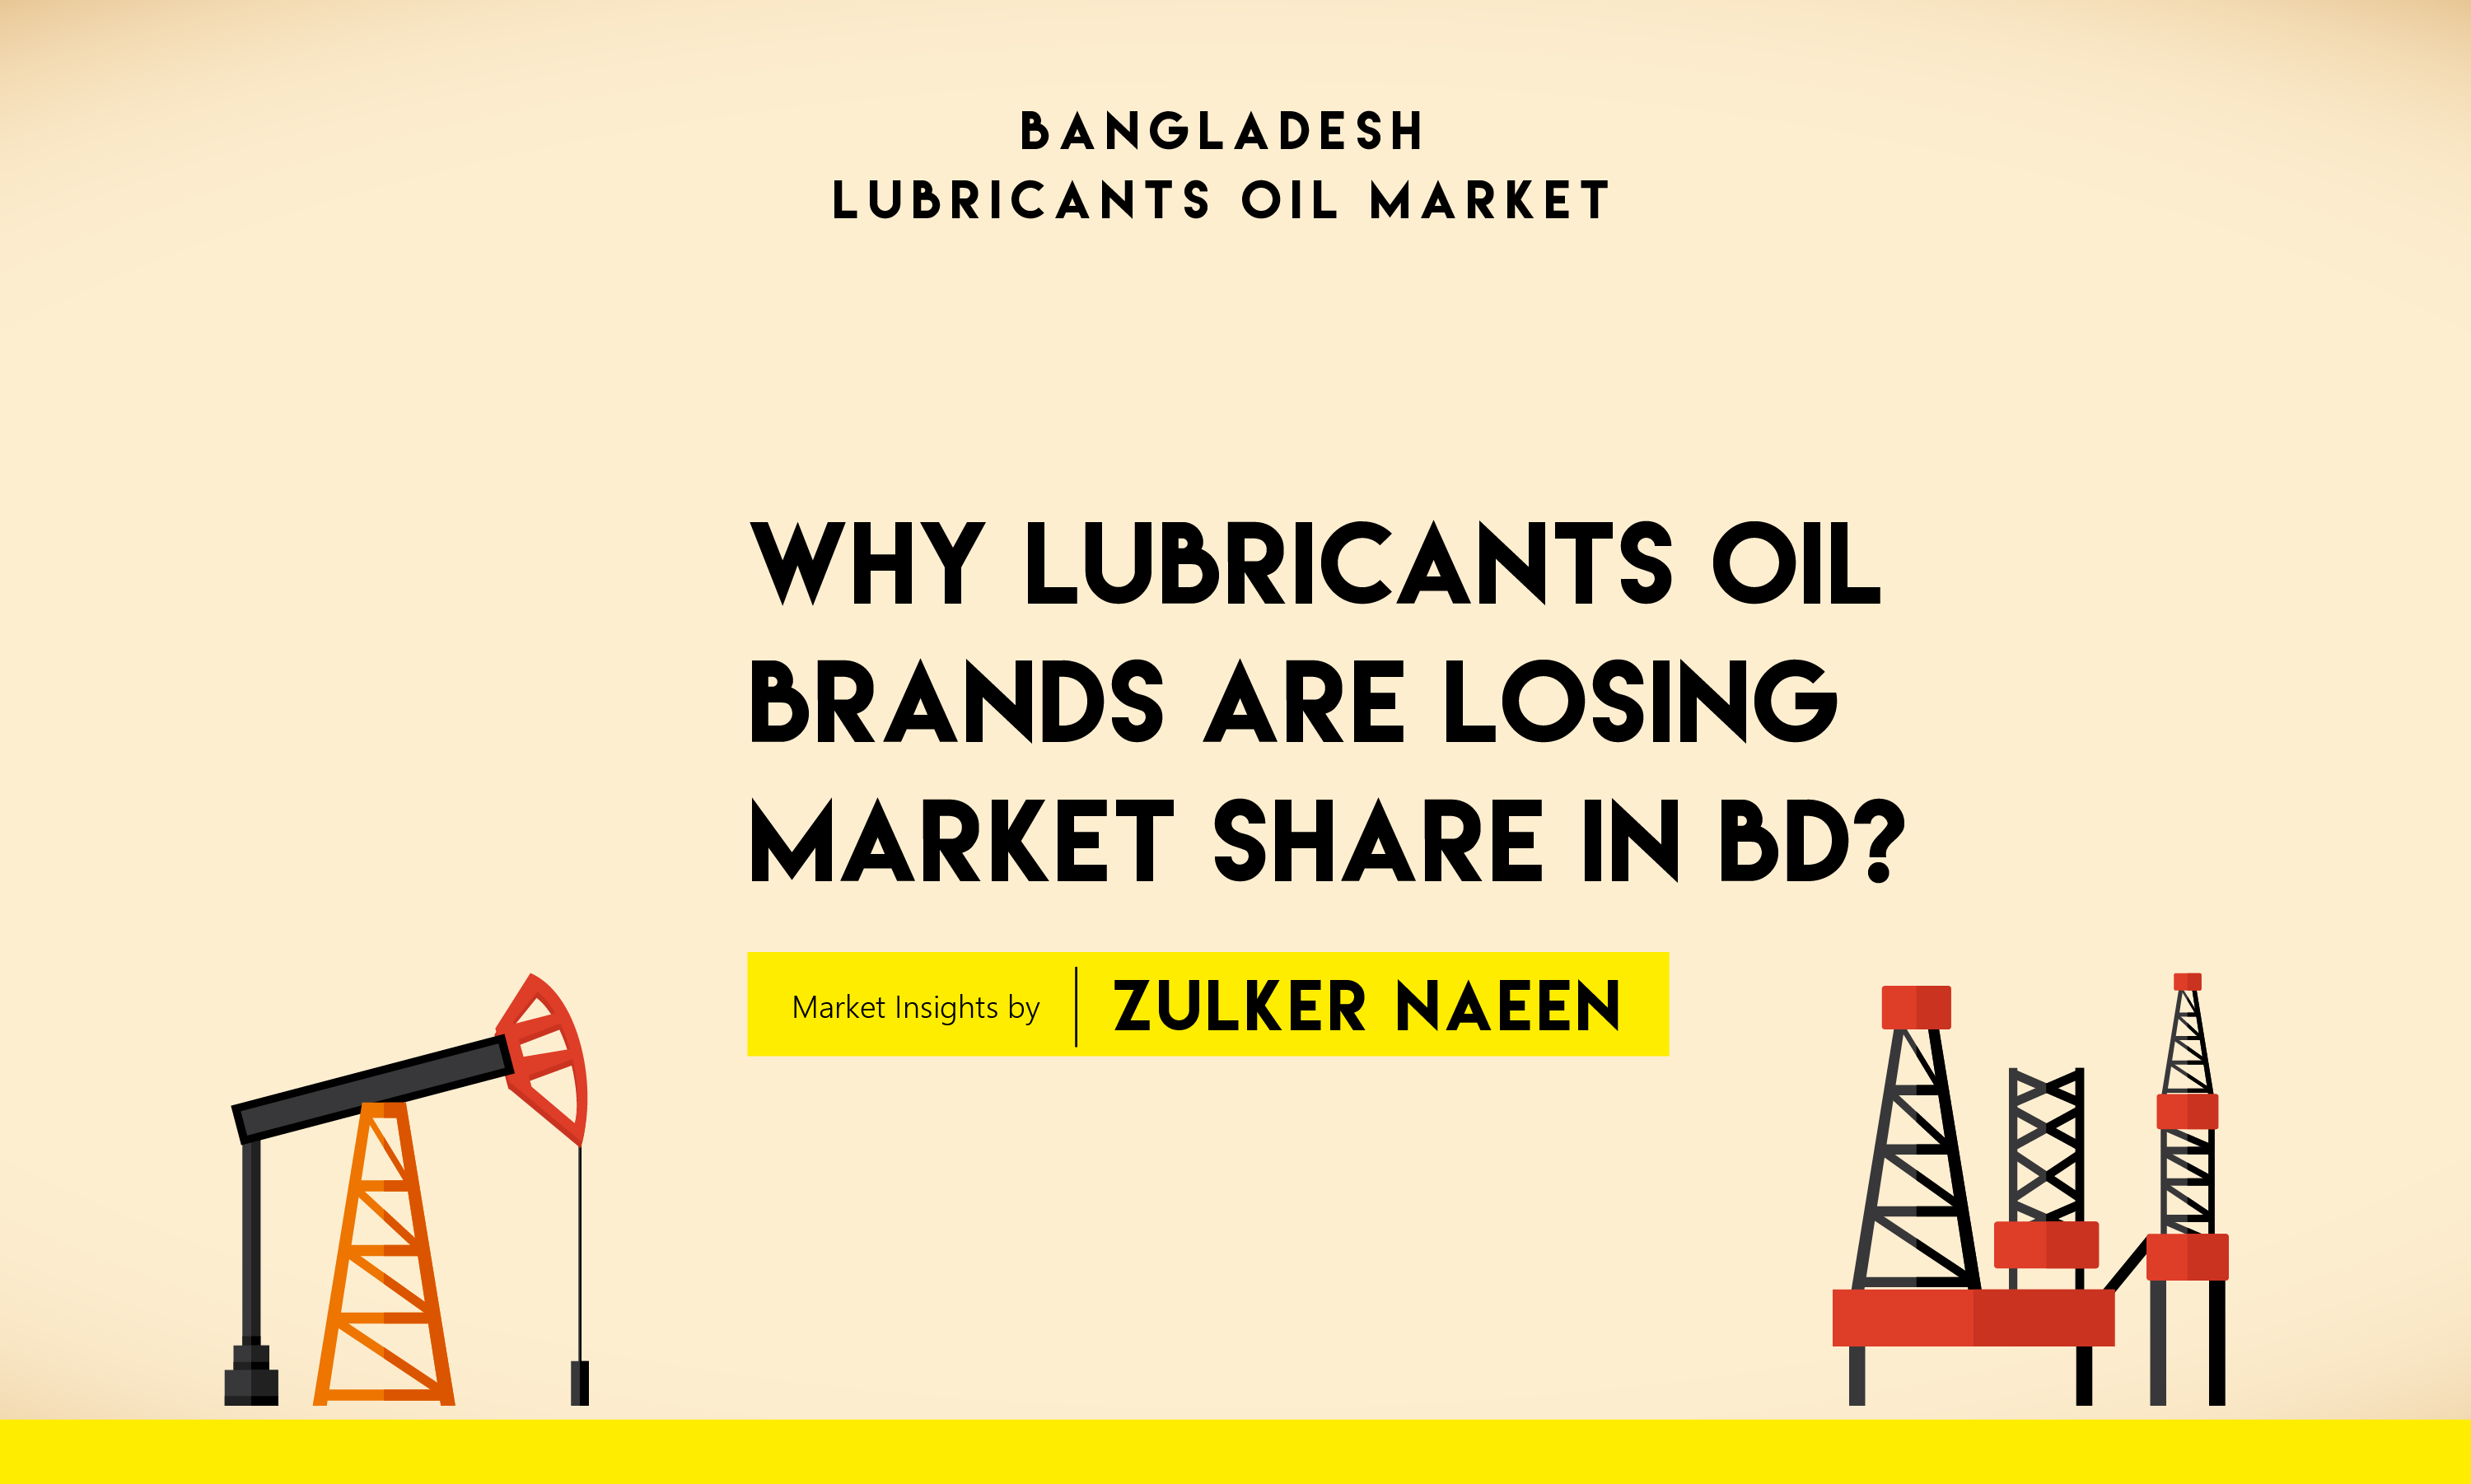 Why Lubricants Oil Brands Are Losing Market Share In Bangladesh